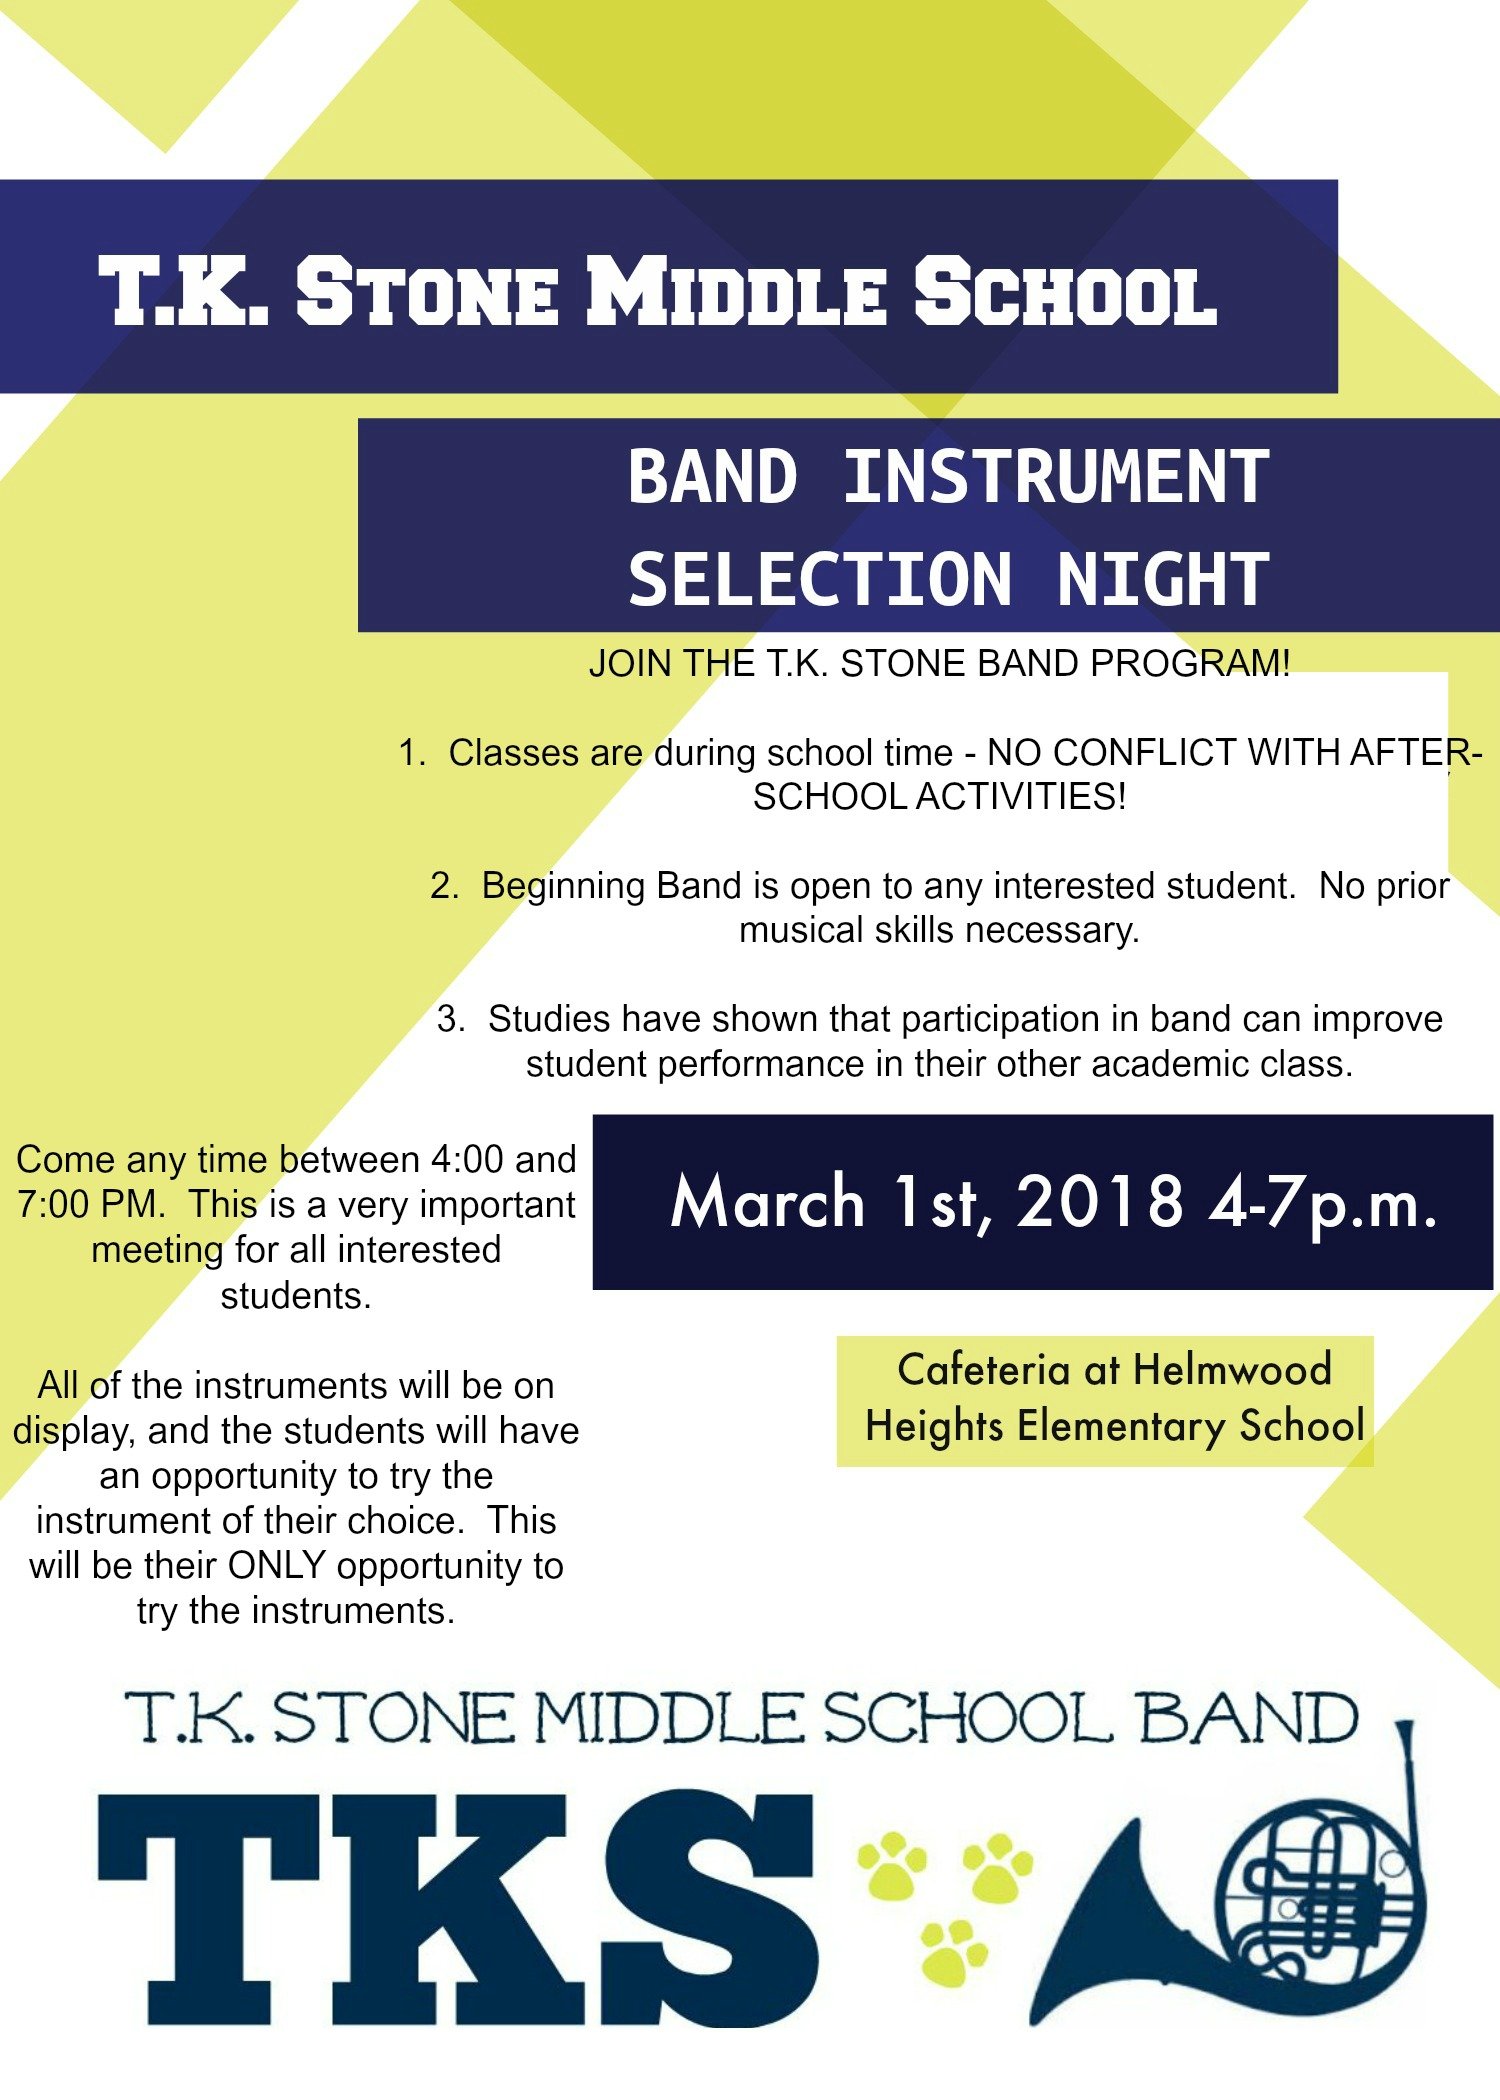 fyler for instrument selection night